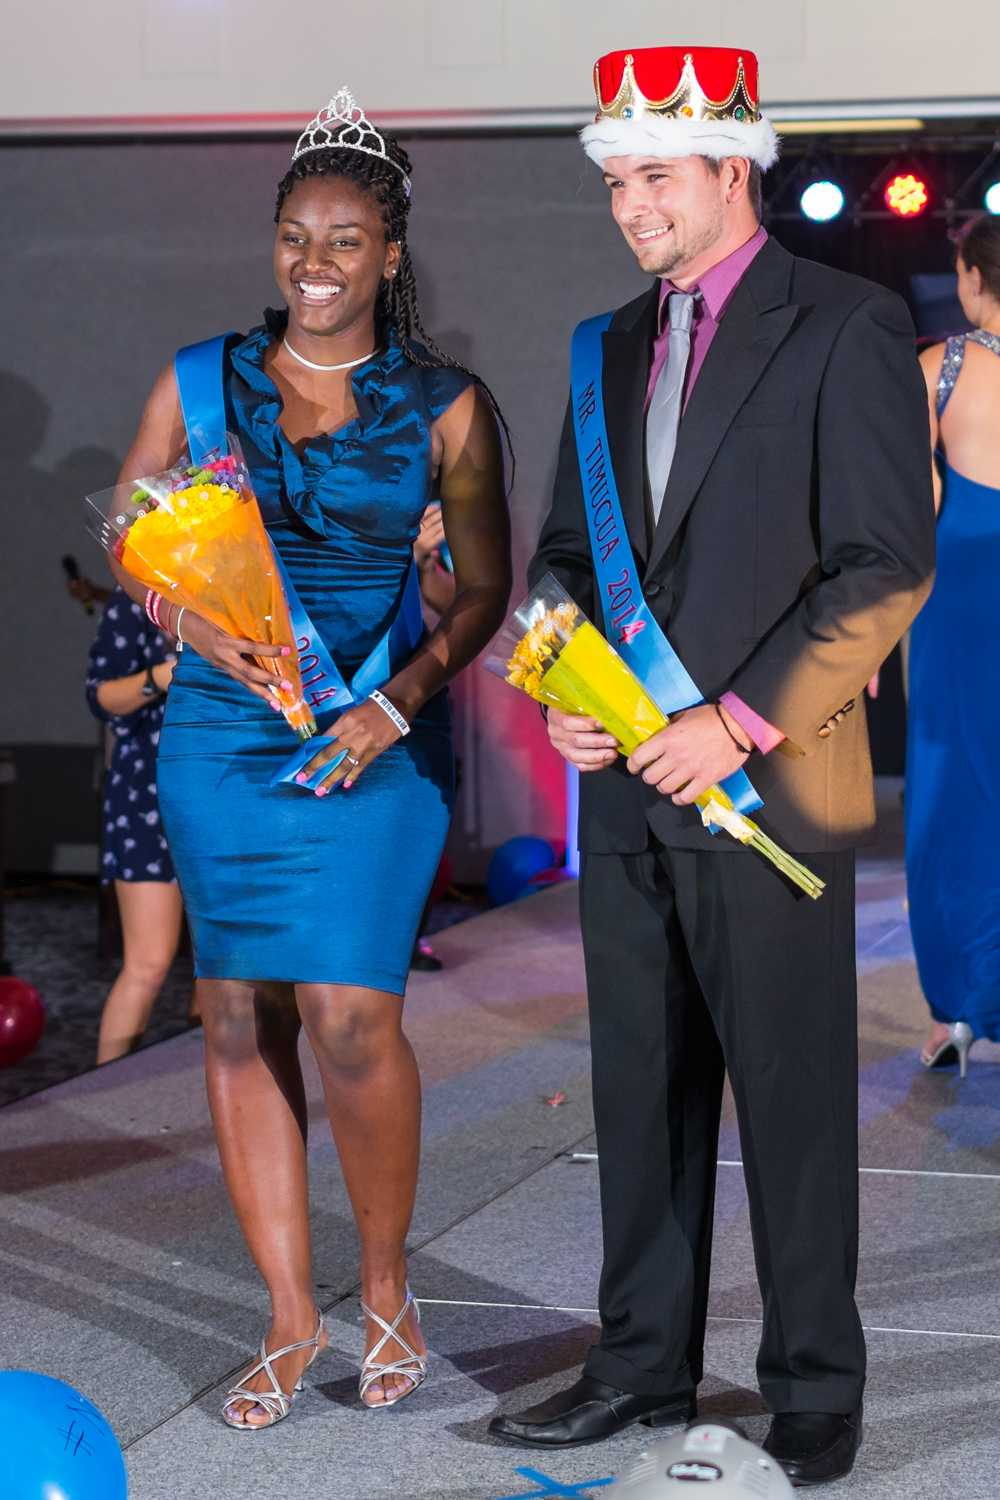 This year's FAU Timucua Pageant winners are Alana Chiyembekeza (left) and Michael Brown (right). [ Mohammed F Emran | Web Editor ]